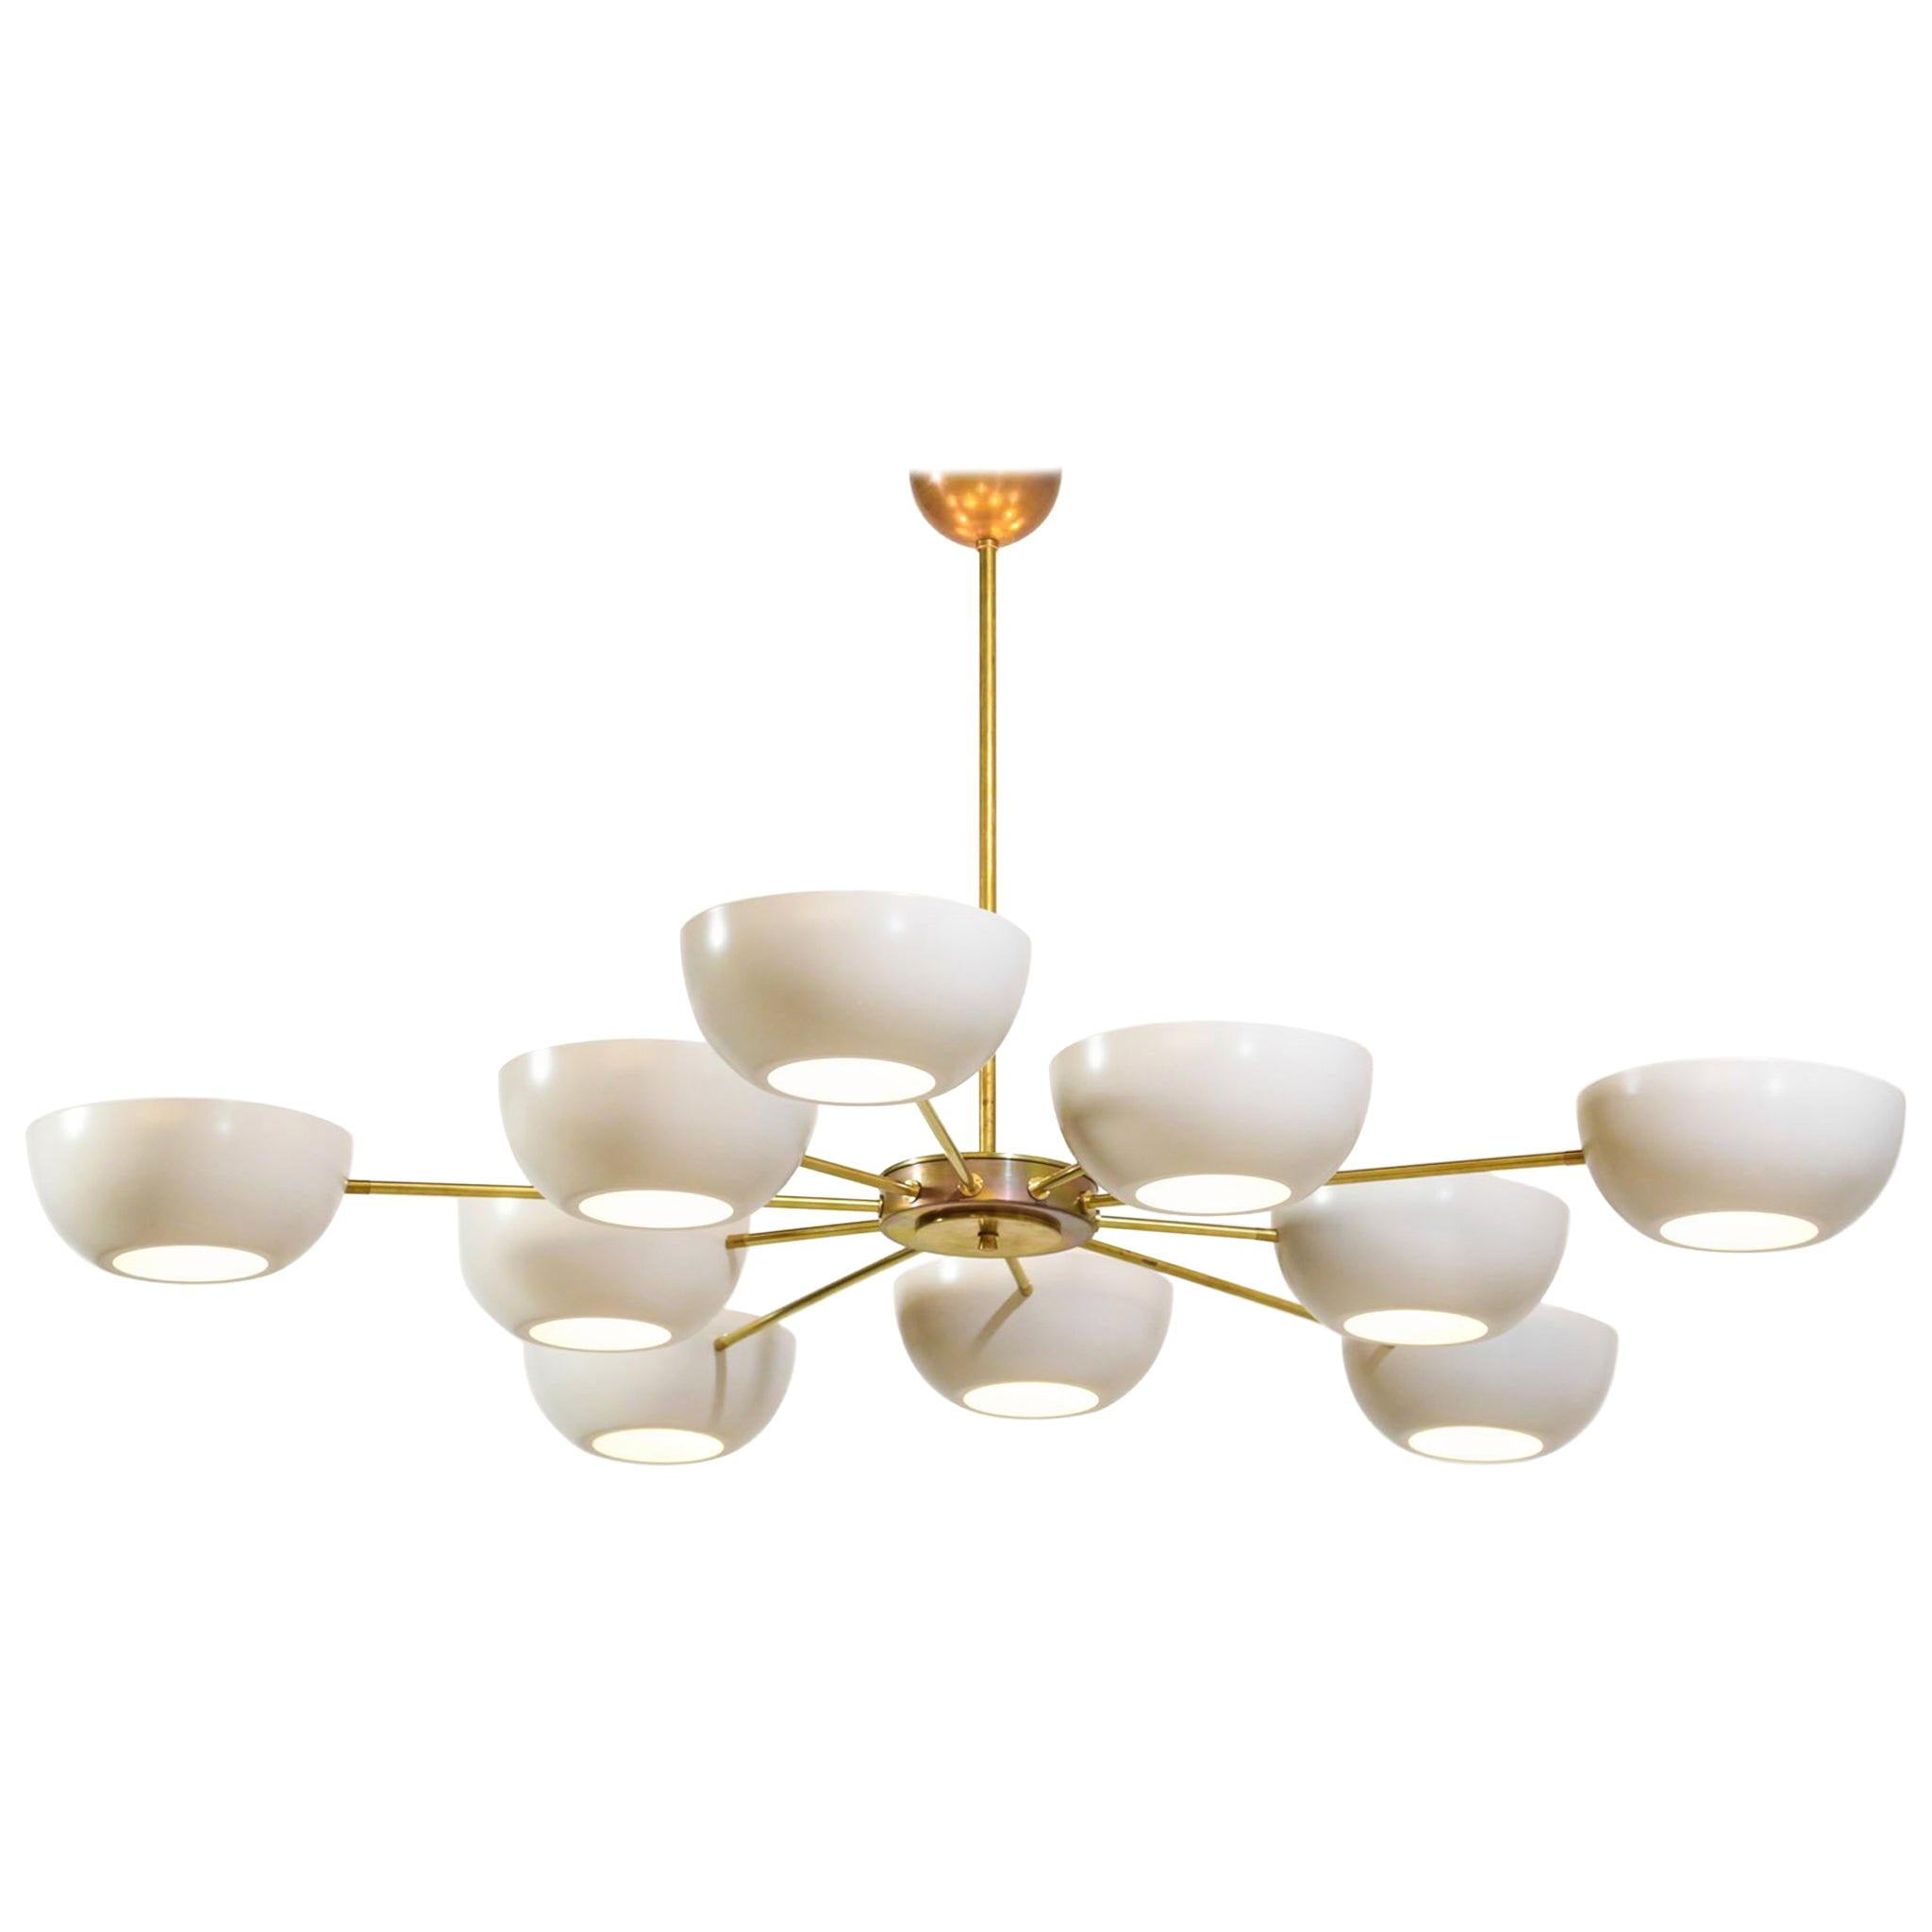 "Large Italian Modern Chandelier with 12 Arms in Gino Sarfatti Style ""Angelica"""